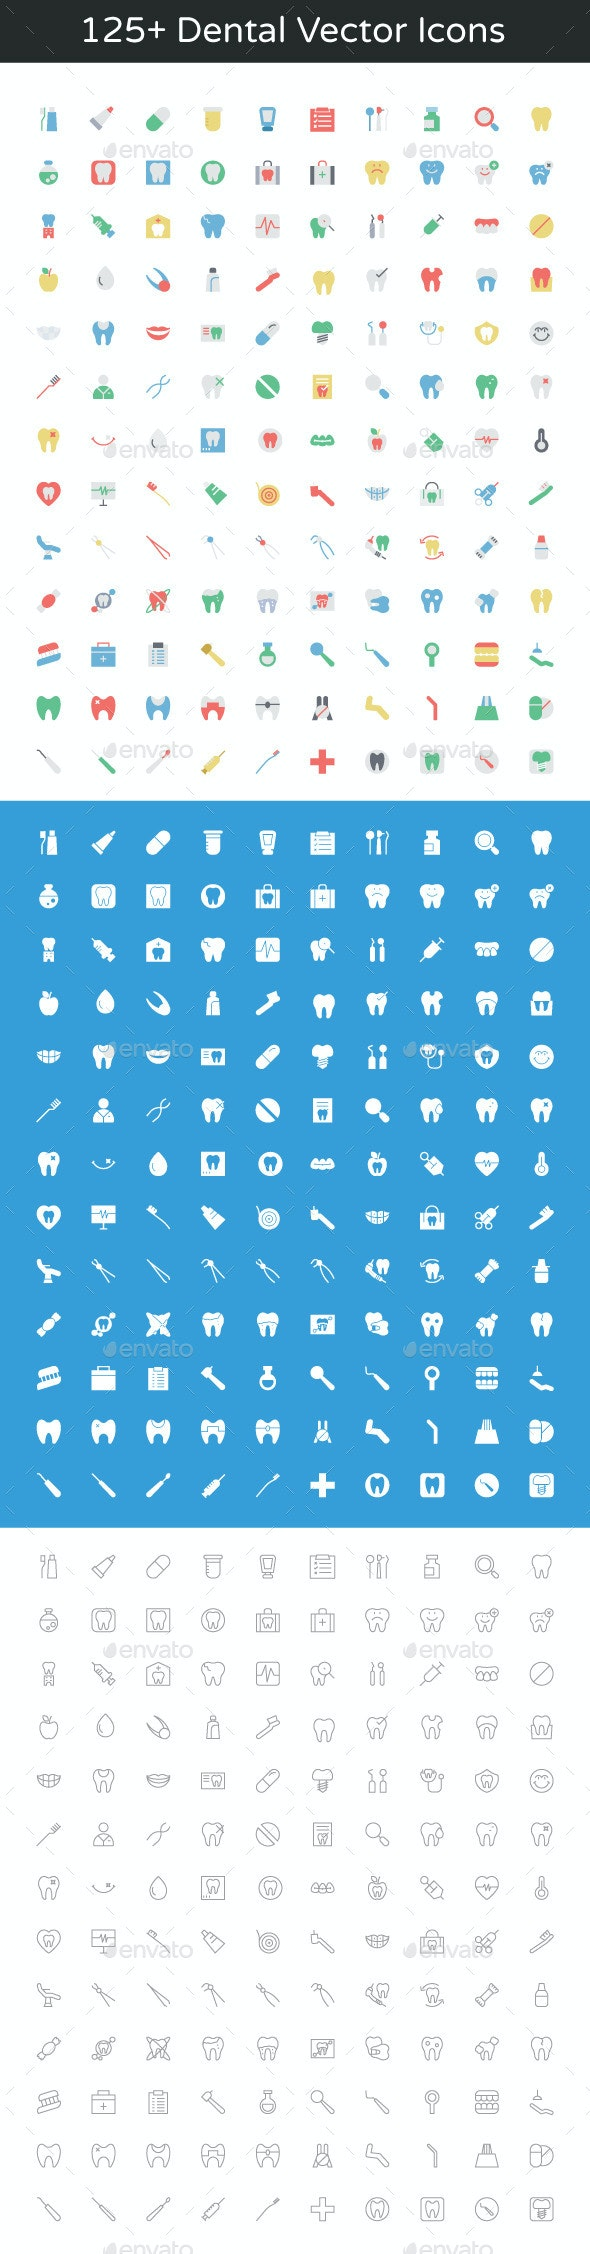 125+ Dental Vector Icons - Icons